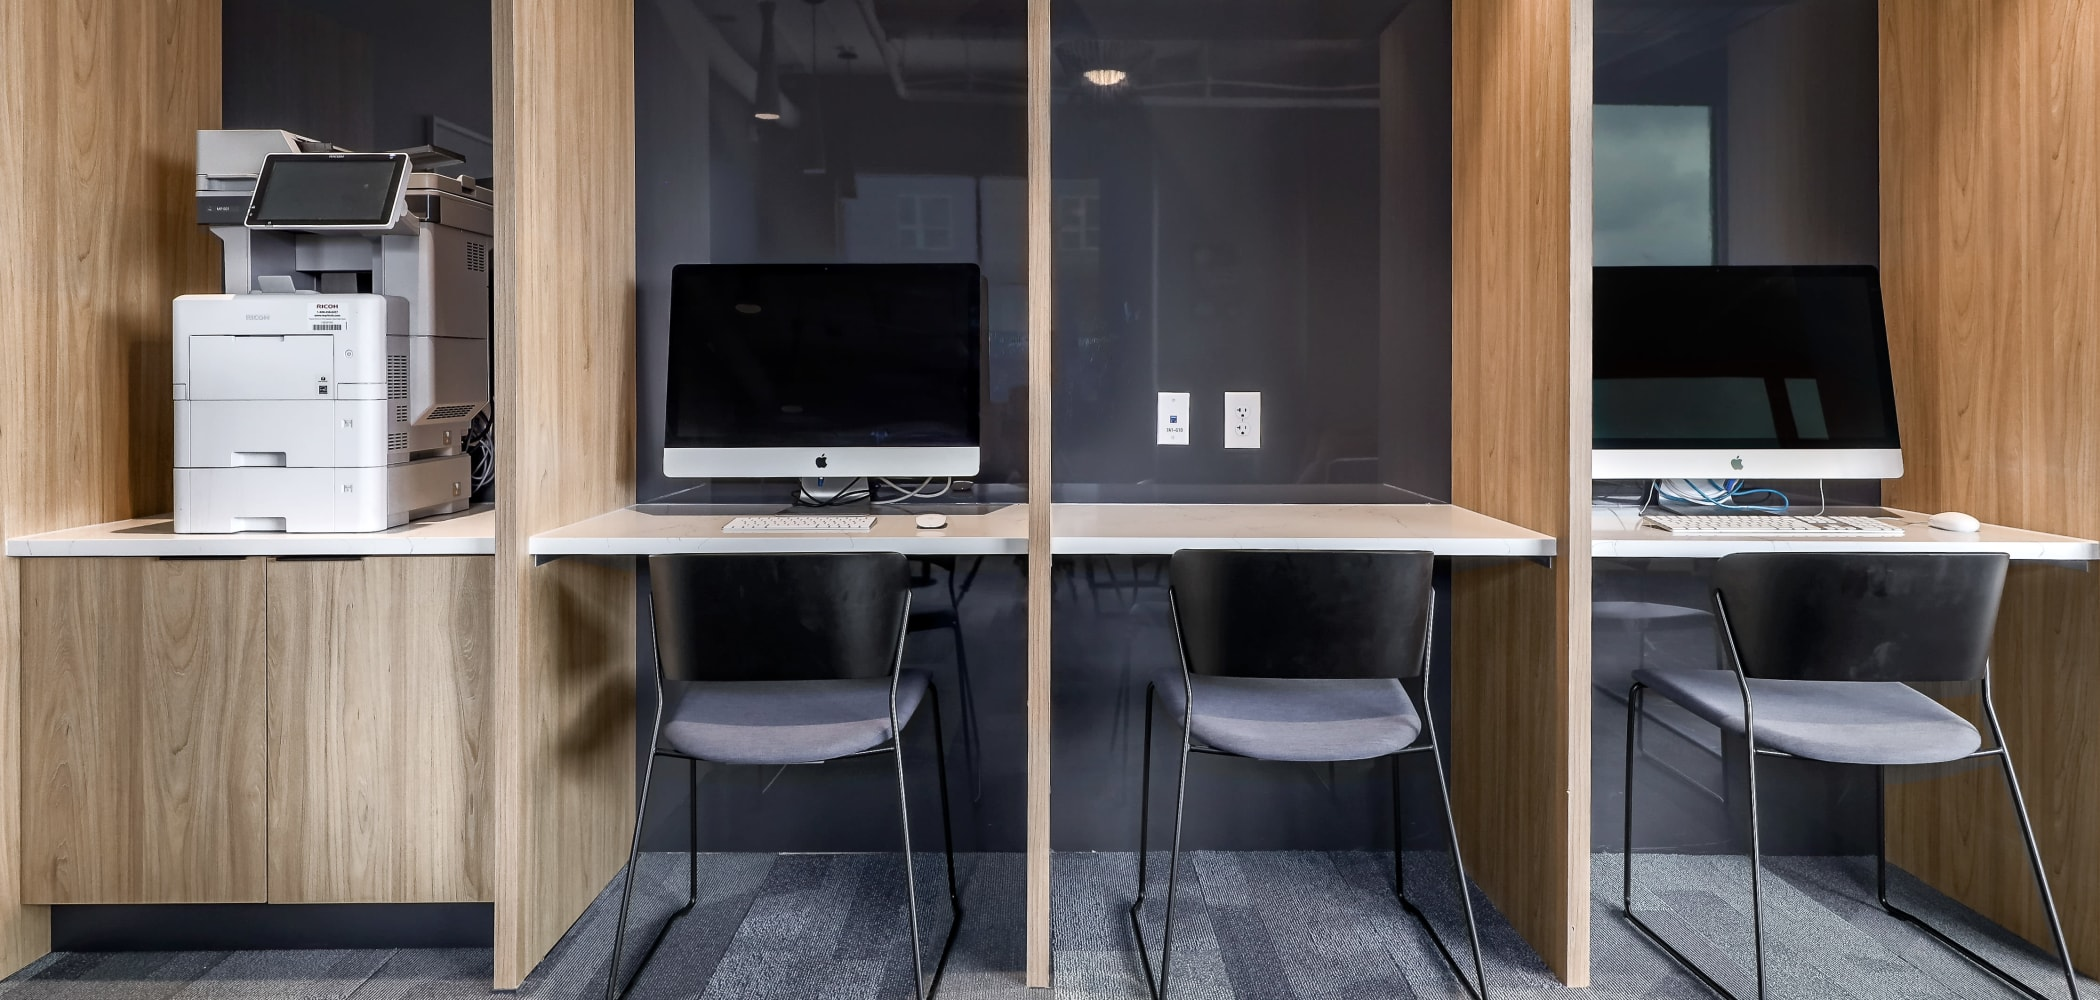 Student Apartments in Austin, TX with a Study Lounge